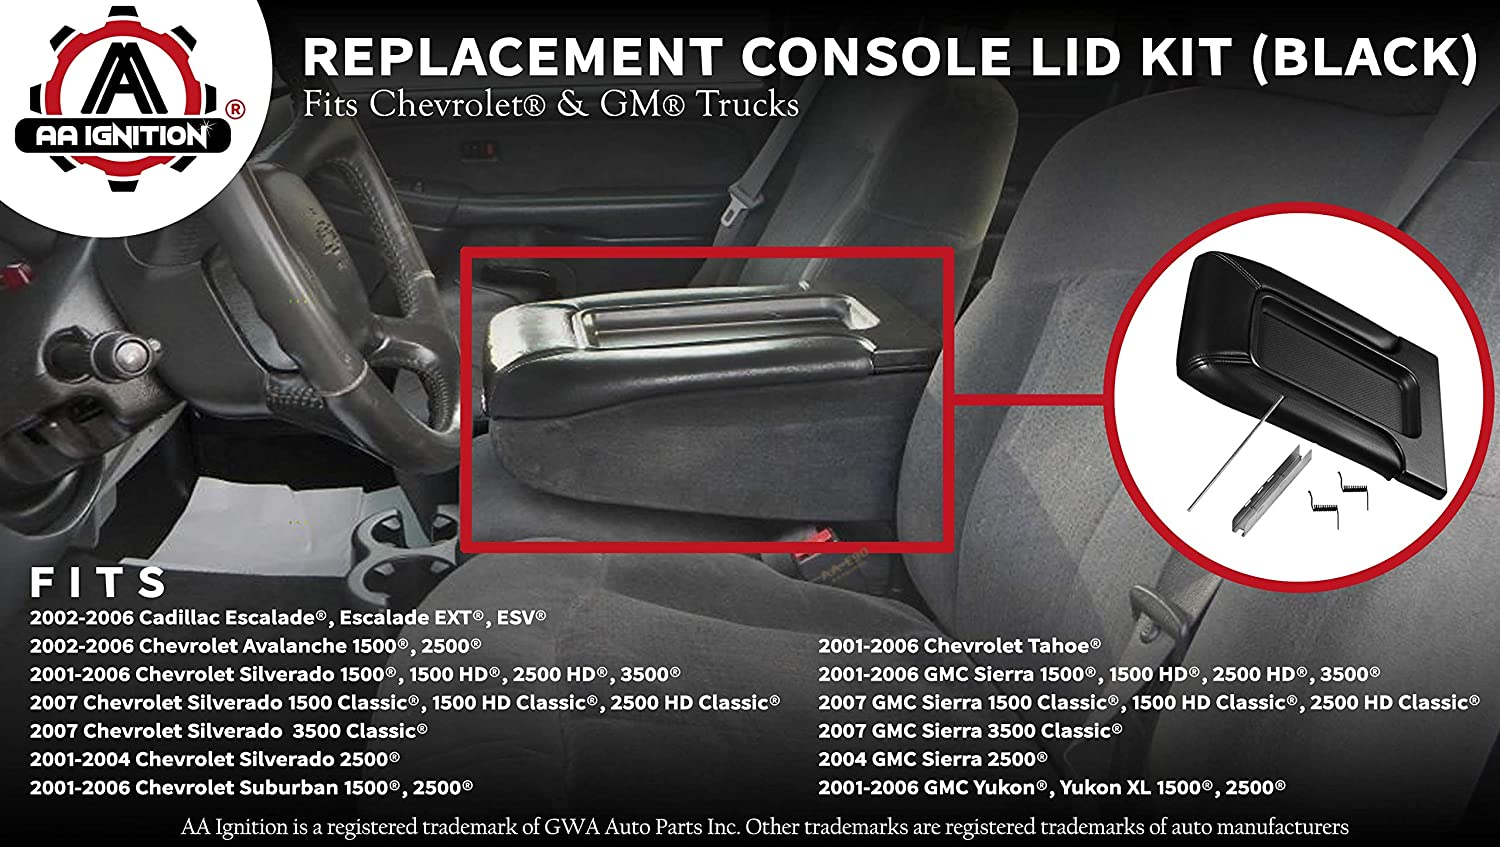 19127366 924-812 Tahoe Avalanche Suburban Replaces# 924-811 Interior Armrest Hinge Latch Center Console Lid Replacement Kit Black 19127365 Fits Chevy Silverado Yukon 19127364 GMC Sierra